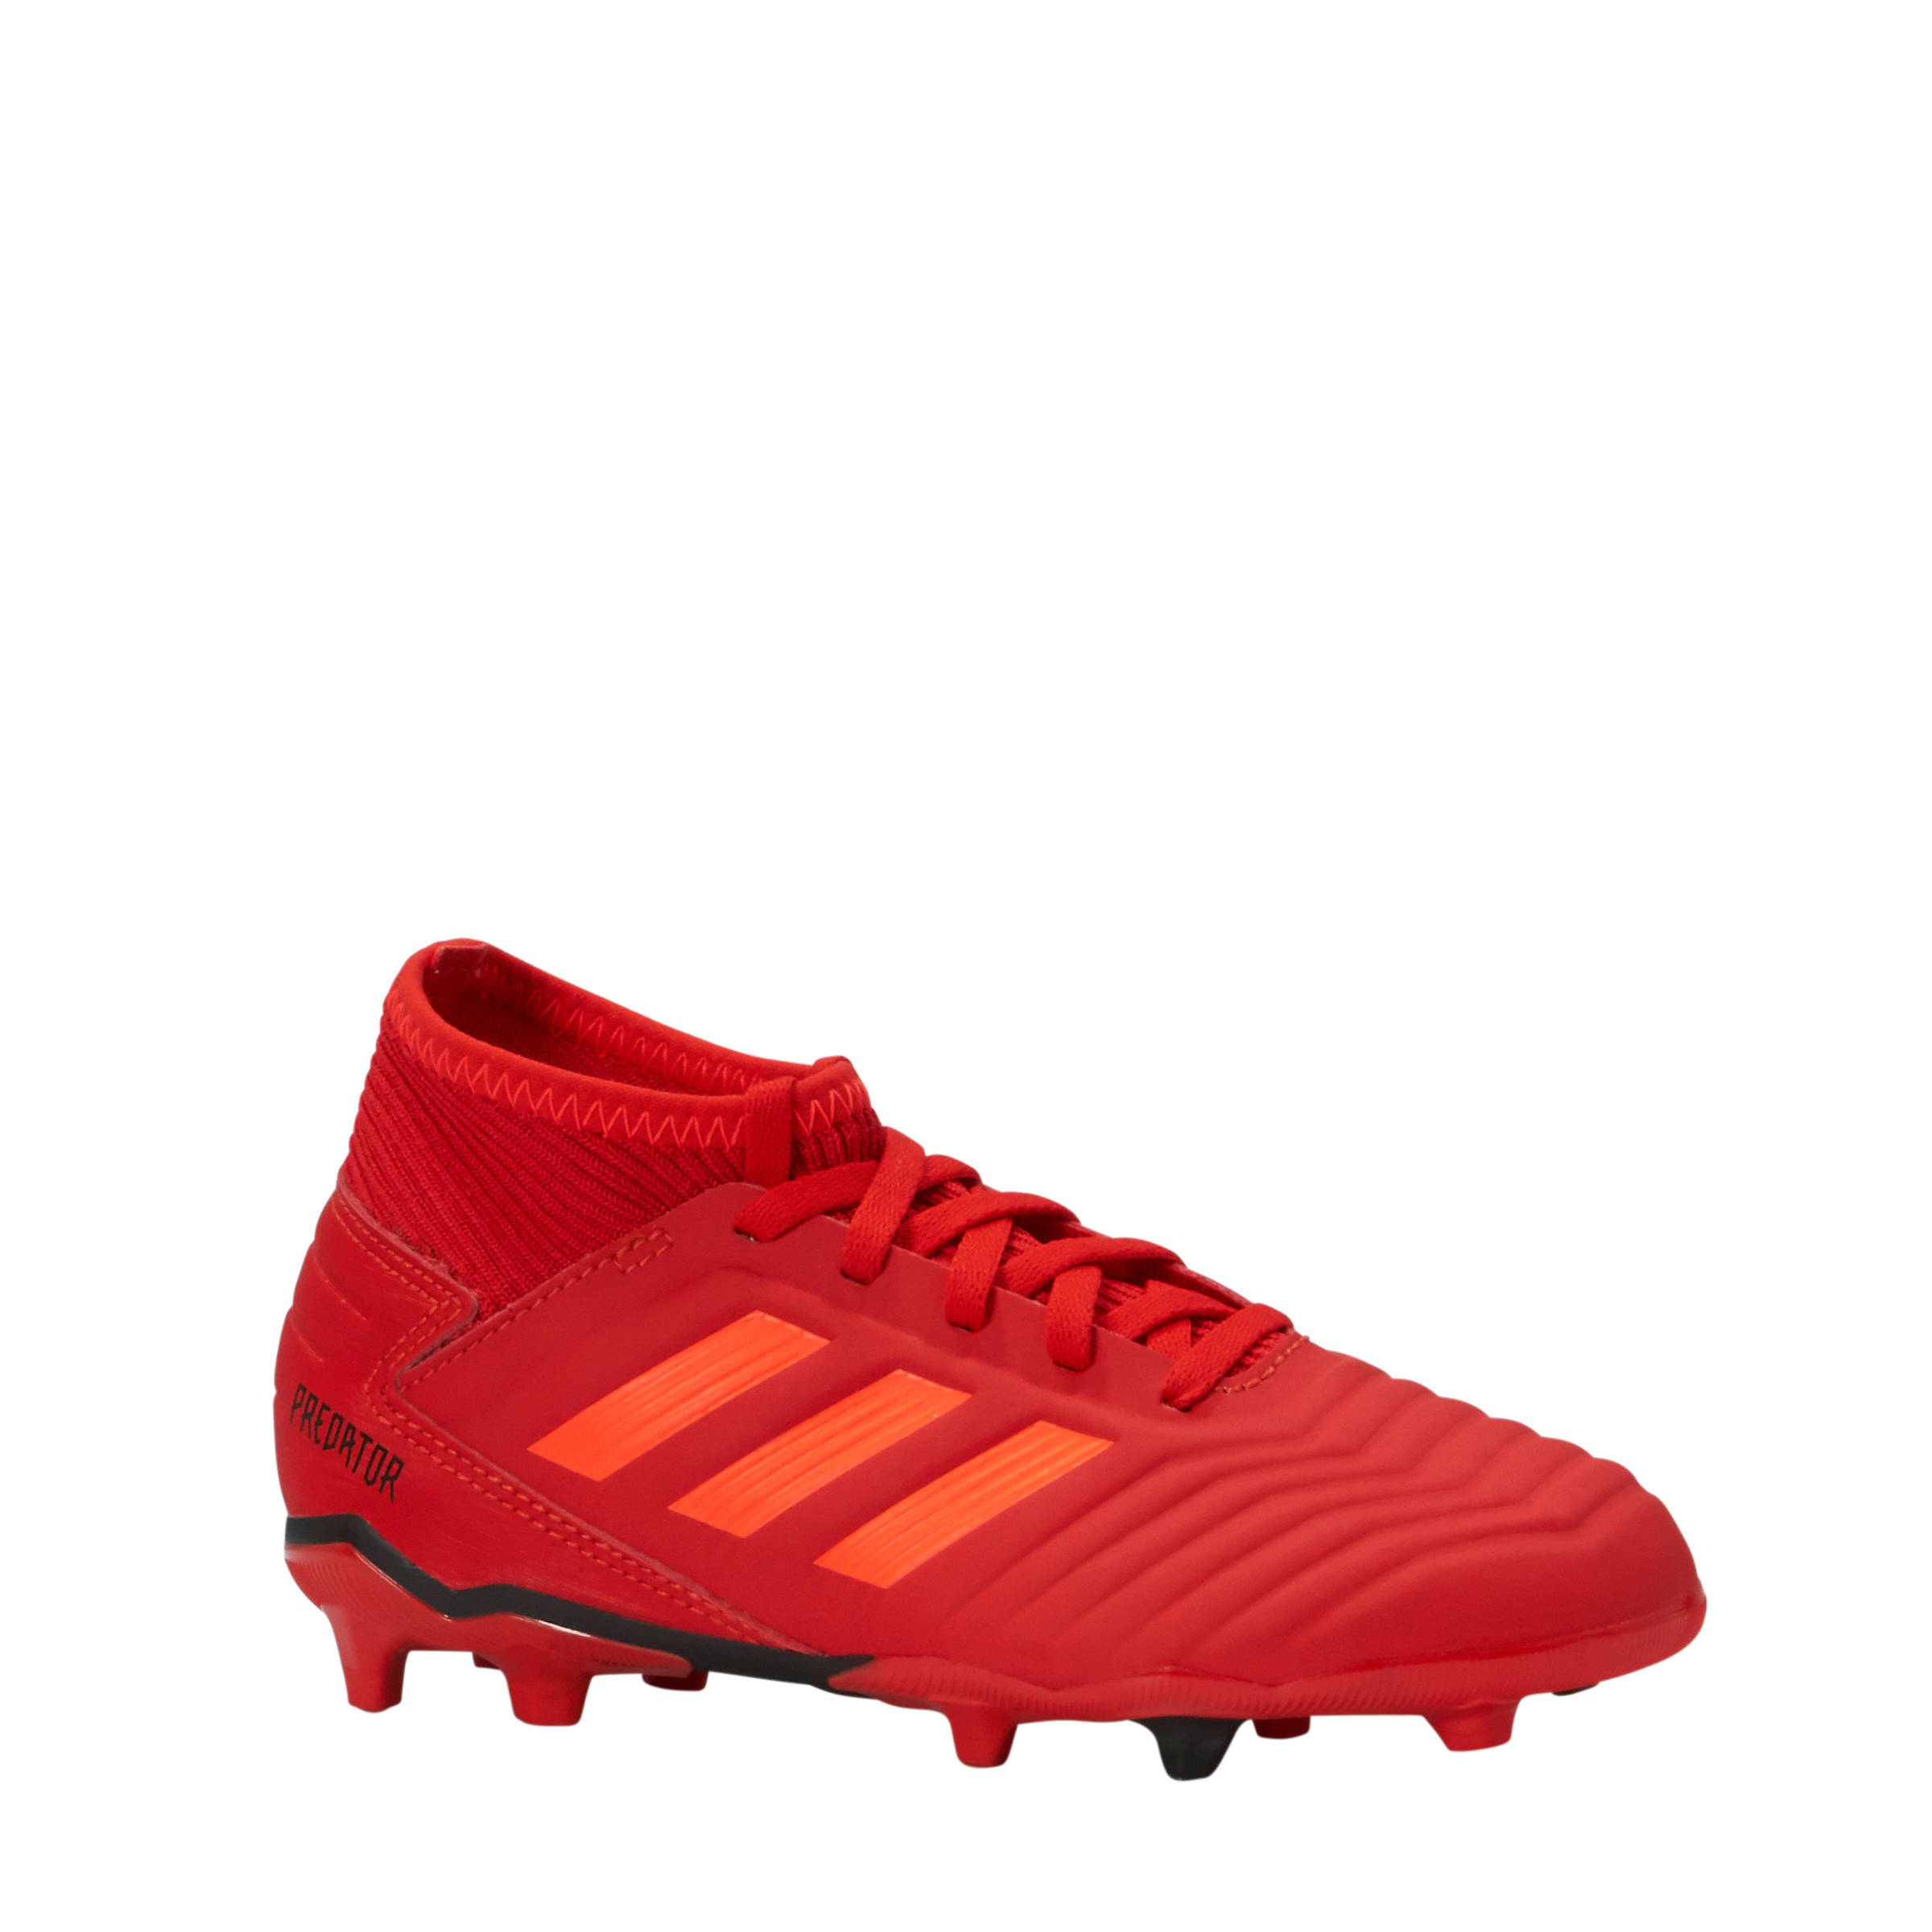 save off 6e9dc c4ee7 adidas performance Predator 19.3 FG J voetbalschoenen rood